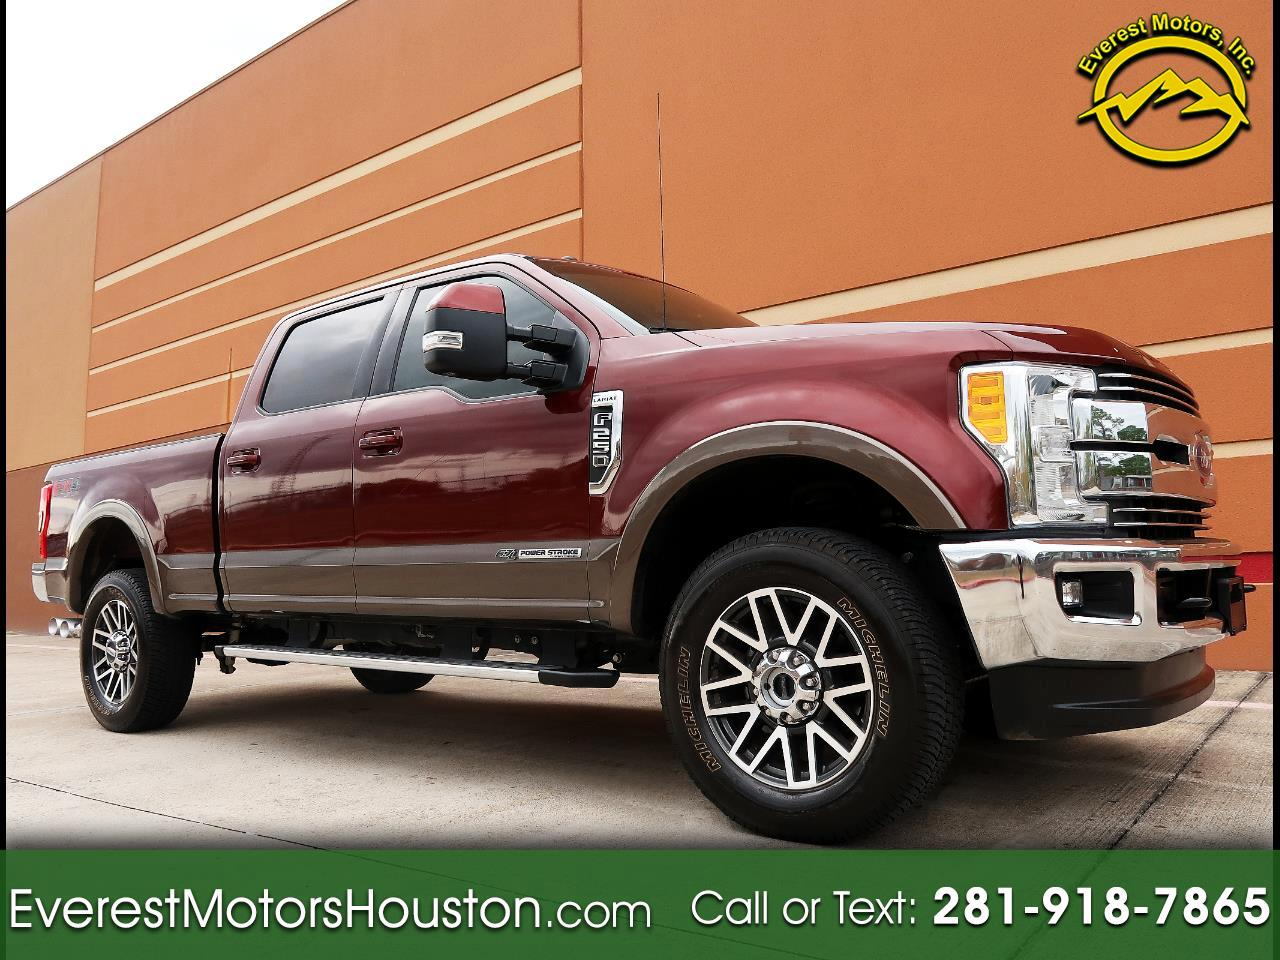 2017 Ford Super Duty F-250 SRW Lariat 4WD Crew Cab Short Bed